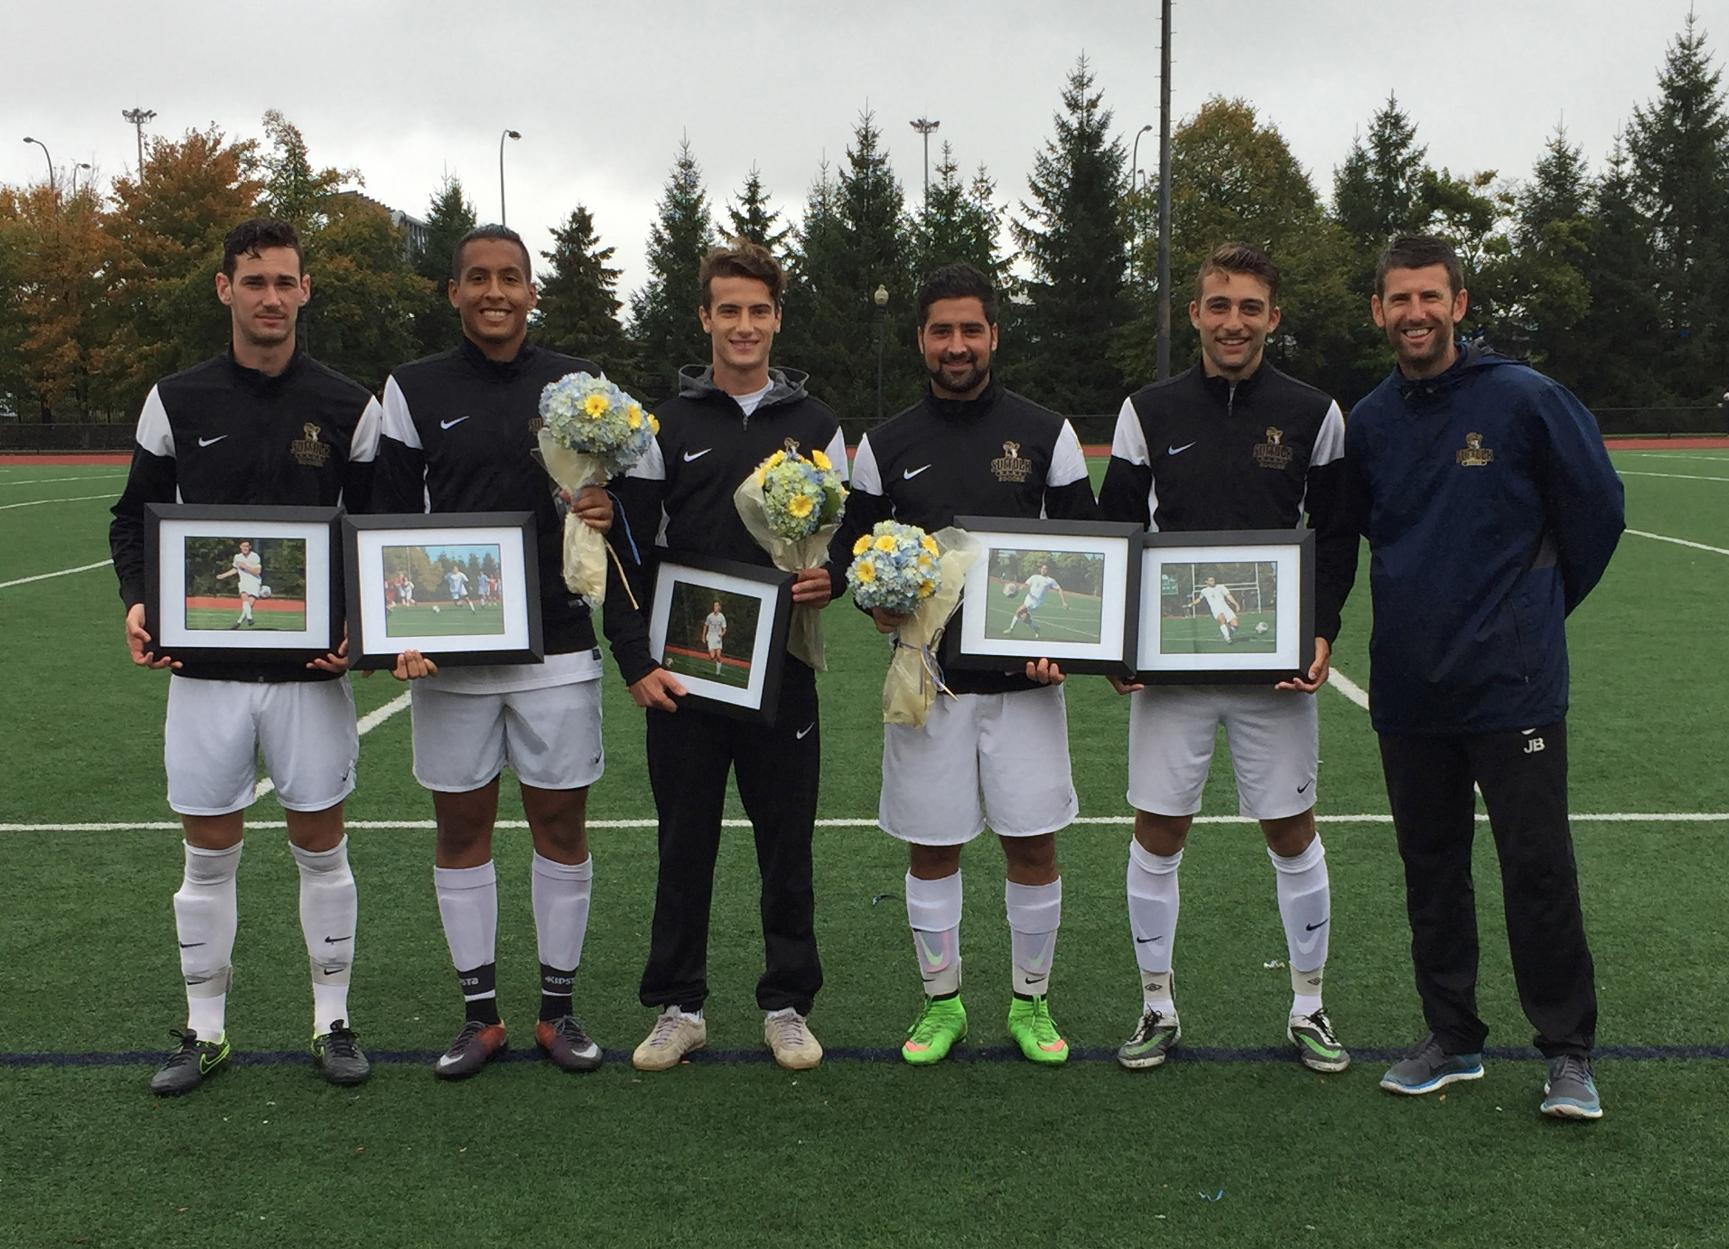 Men's Soccer Clinches Home Field, Defeats Rivier, 2-1, on Senior Day